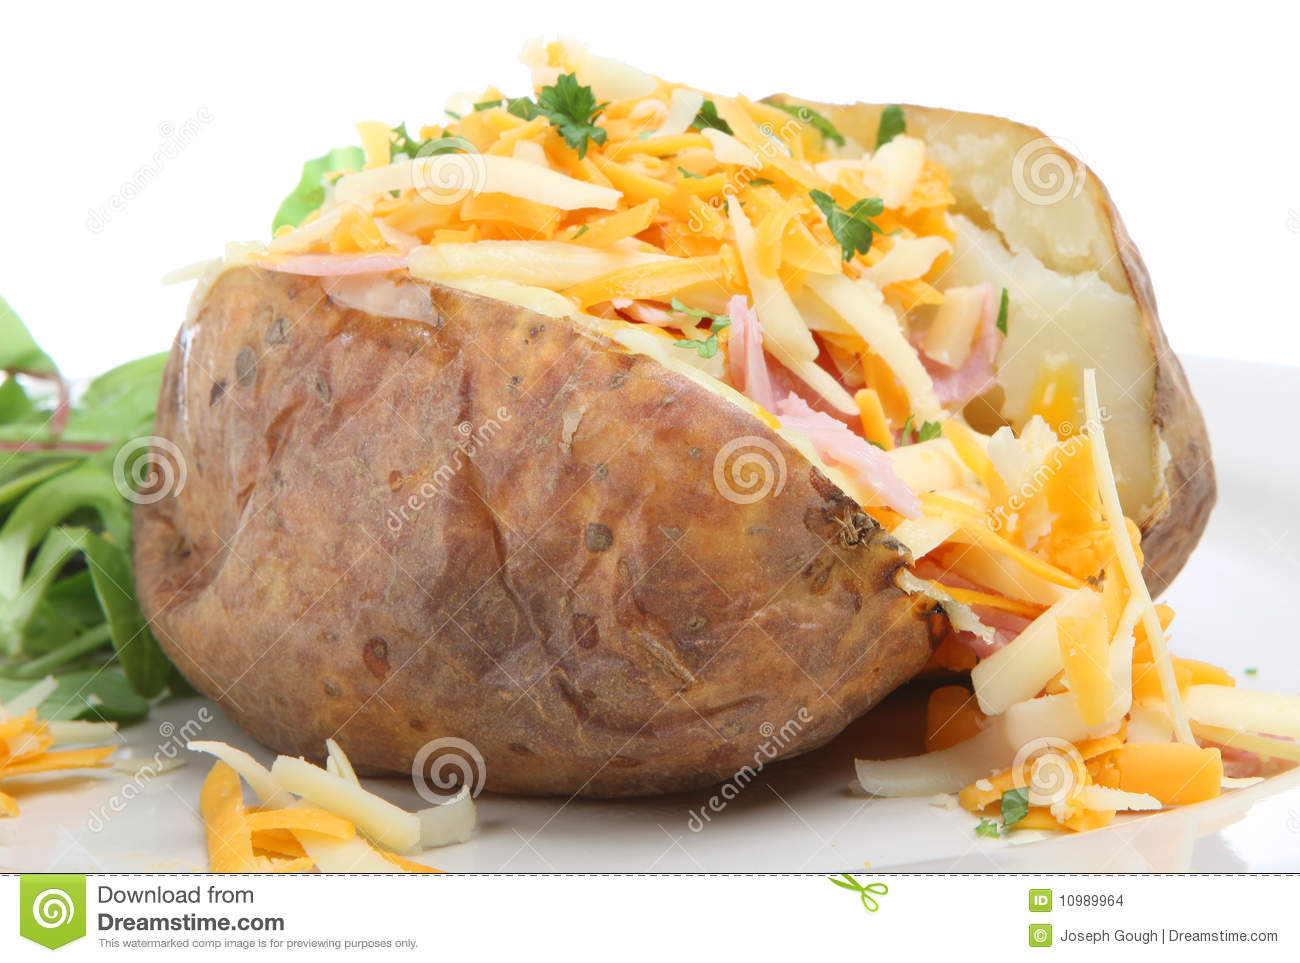 Baked potato stuffed with ham and grated cheeses.